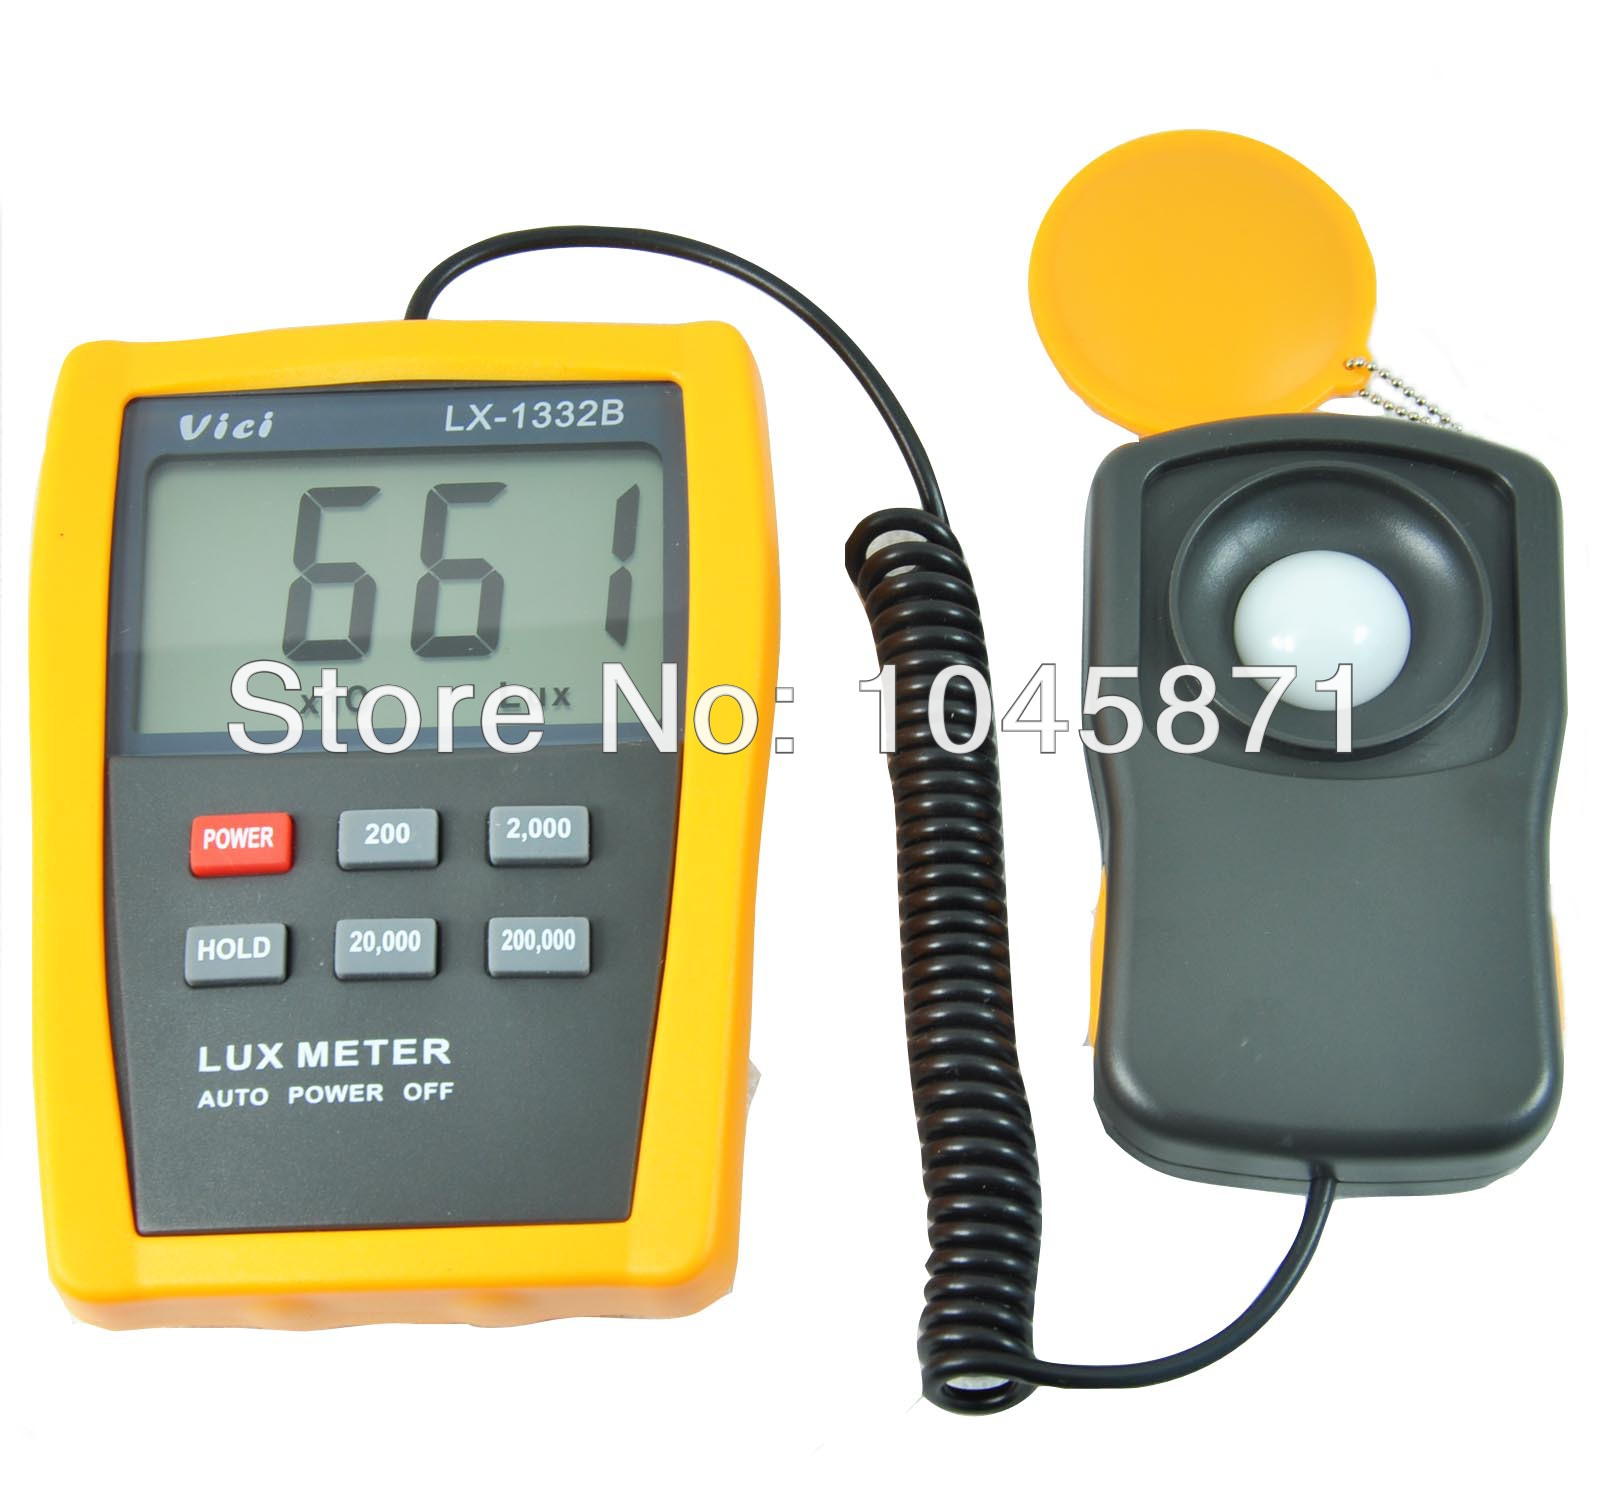 me002 Accurate 4 range 200,000 Lux Digital Light Meter Tester Luxmeter LX1332B FREE SHIPPING<br><br>Aliexpress